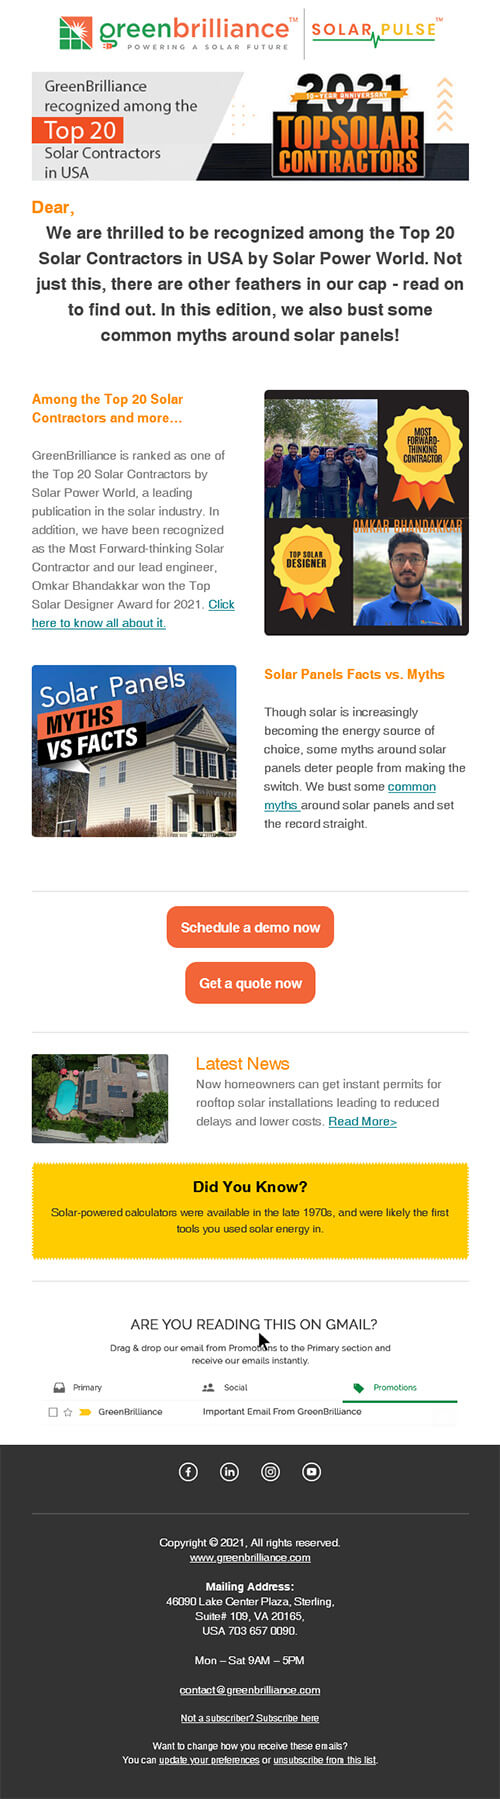 GreenBrilliance recognized among the Top 20 Solar Contractors in USA